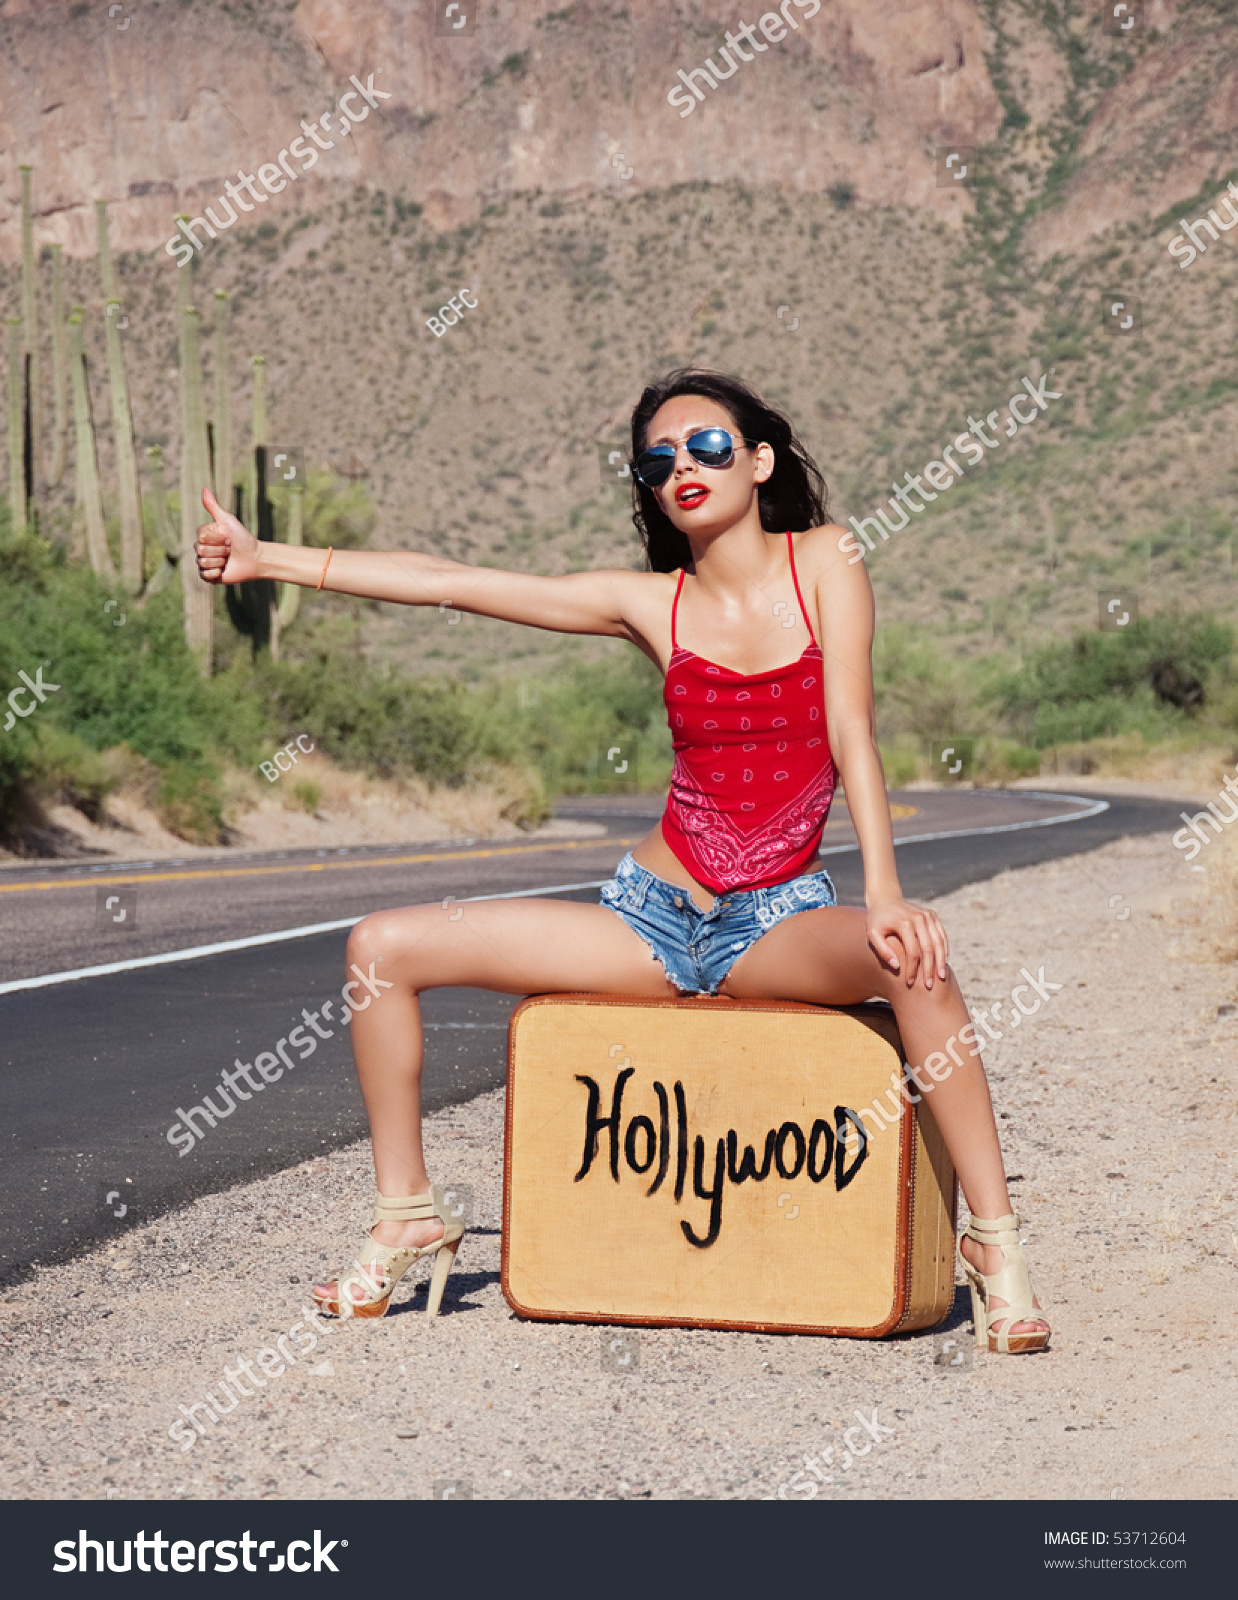 cd0e2c78a1d952 Beautiful young woman wearing red top and tiny denim shorts thumbing and  hitch hiking a ride to Hollywood, California.